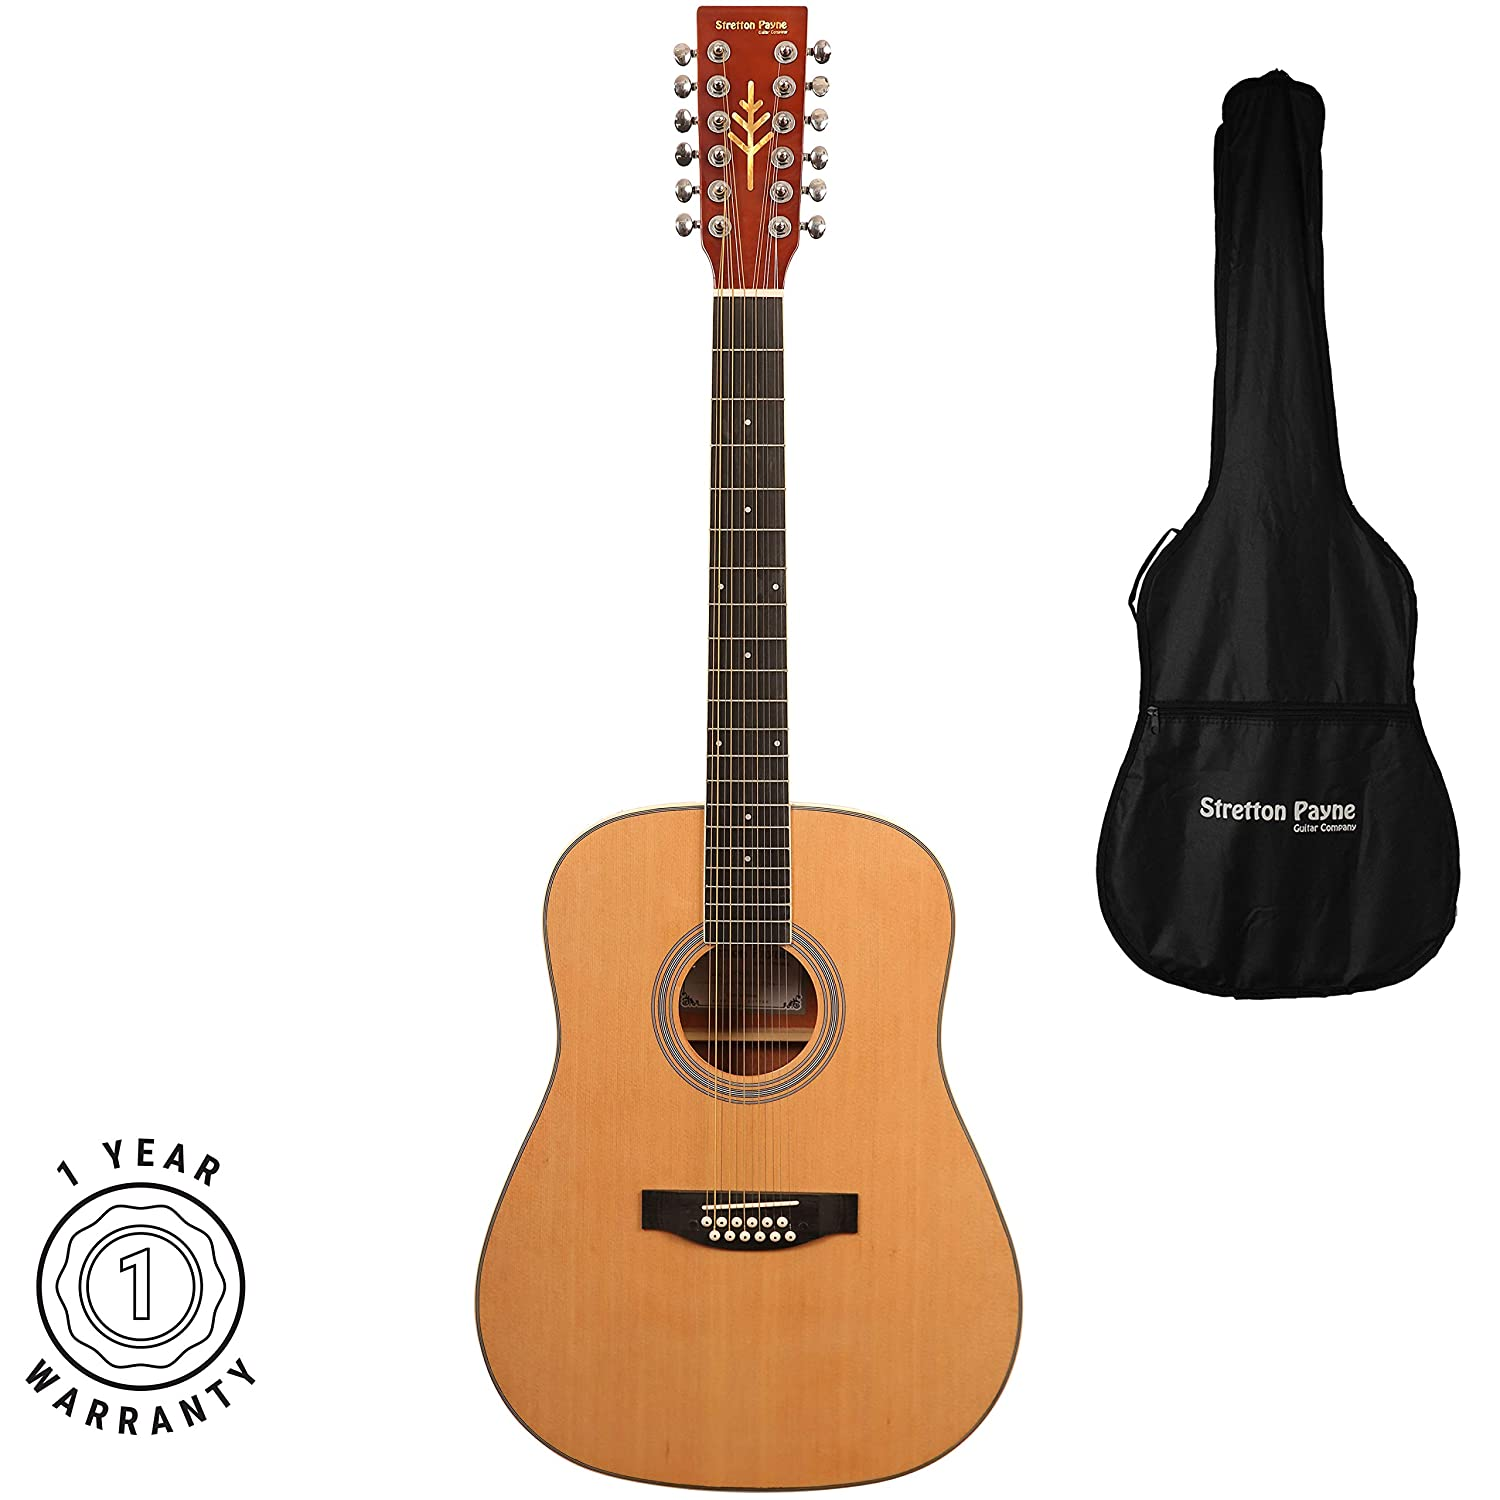 fdddf5584a0 Stretton Payne Dreadnought 12 String Acoustic Guitar Spruce and Mahogany  with 3mm Padded Gig Bag  Amazon.co.uk  Musical Instruments